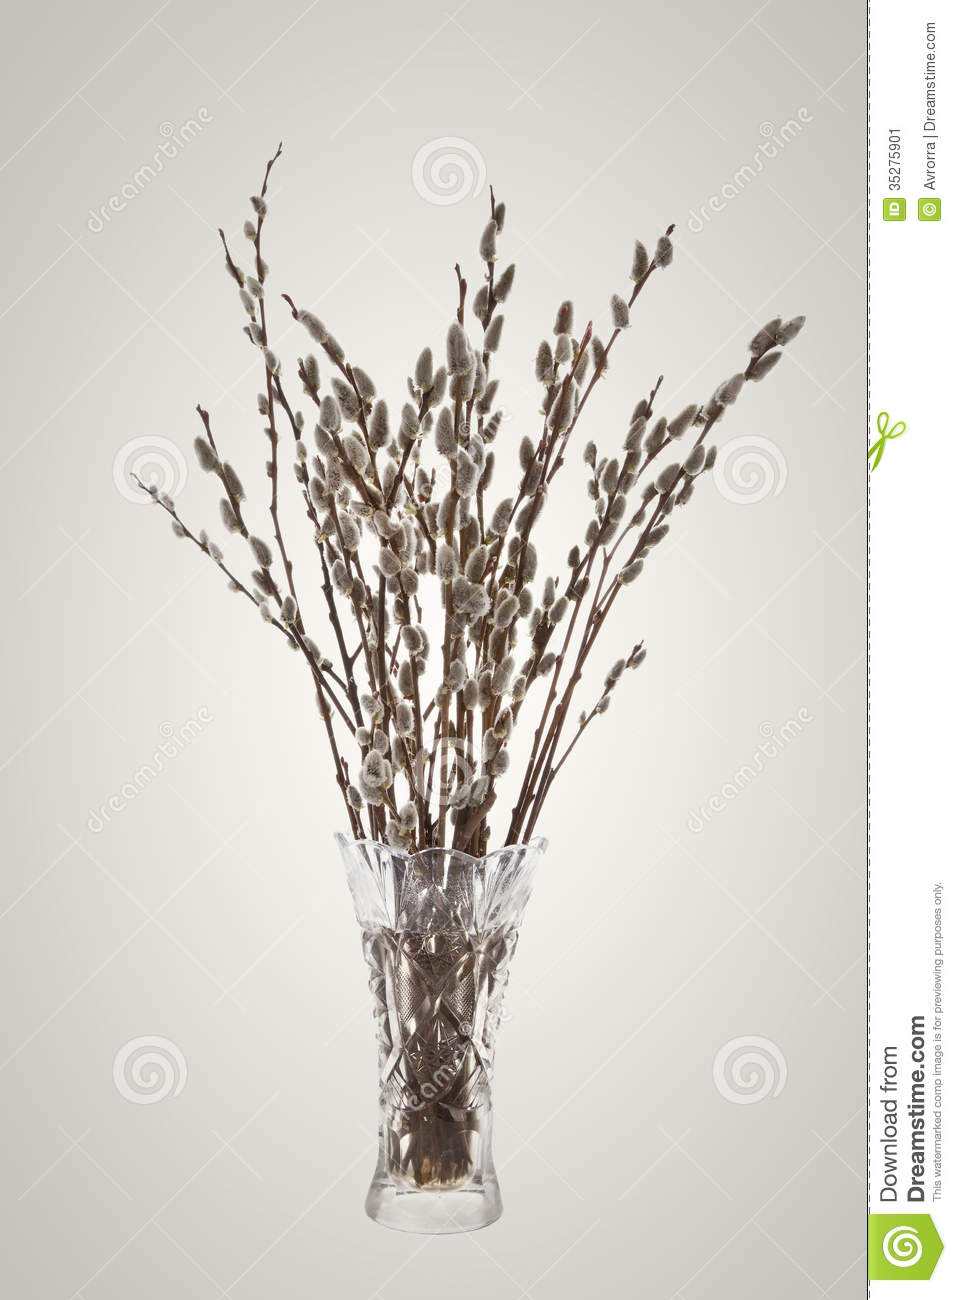 branches du saule de chat avec le bourgeon fleurissant dans le vase image stock image 35275901. Black Bedroom Furniture Sets. Home Design Ideas